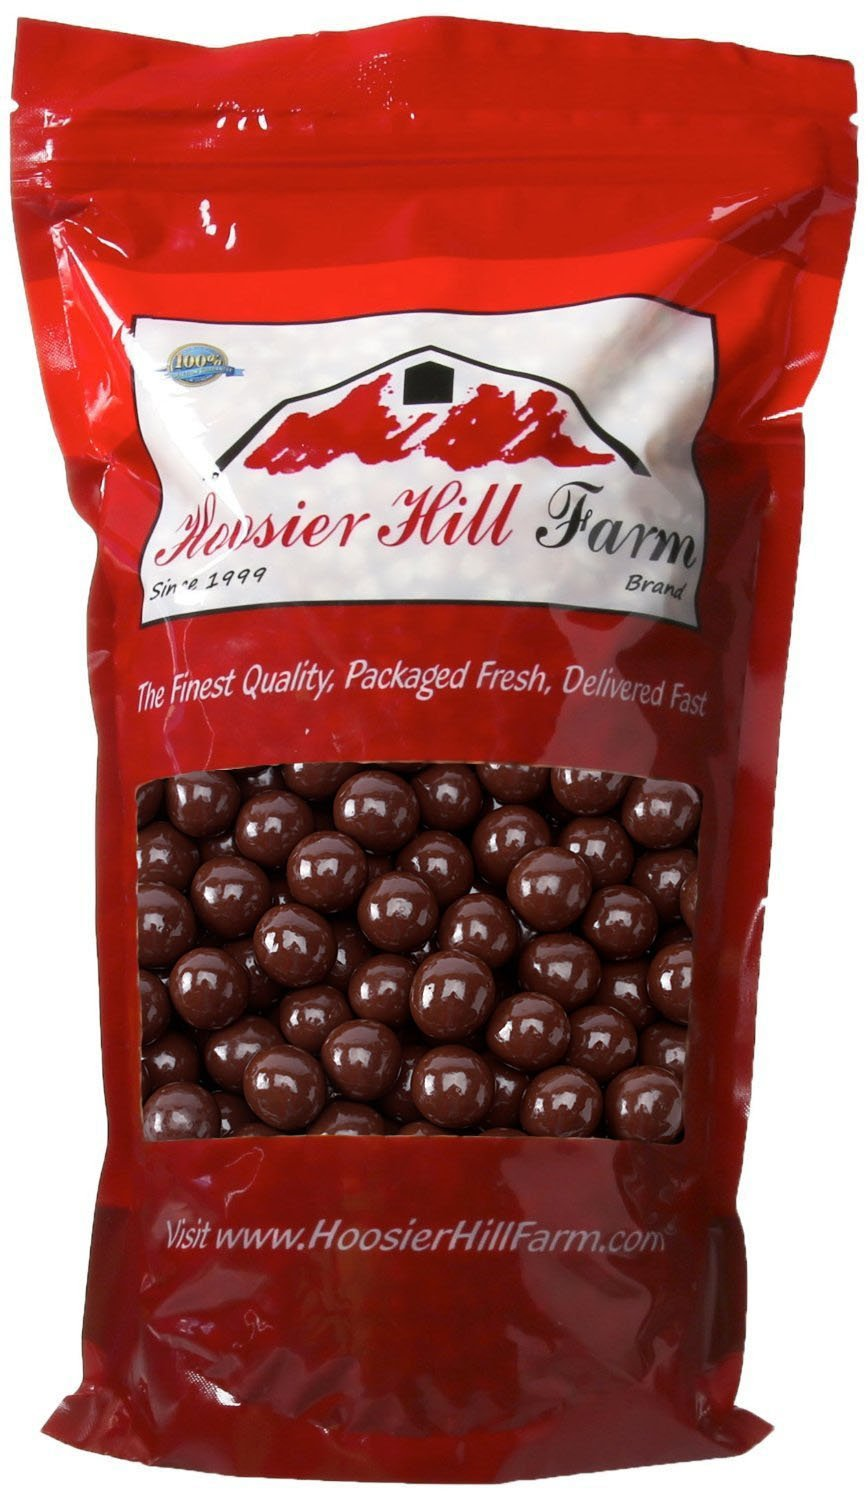 Dark Chocolate Covered Gluten Free Pretzel Rounds, by Hoosier Hill Farm, (2 lb bag) Made in USA